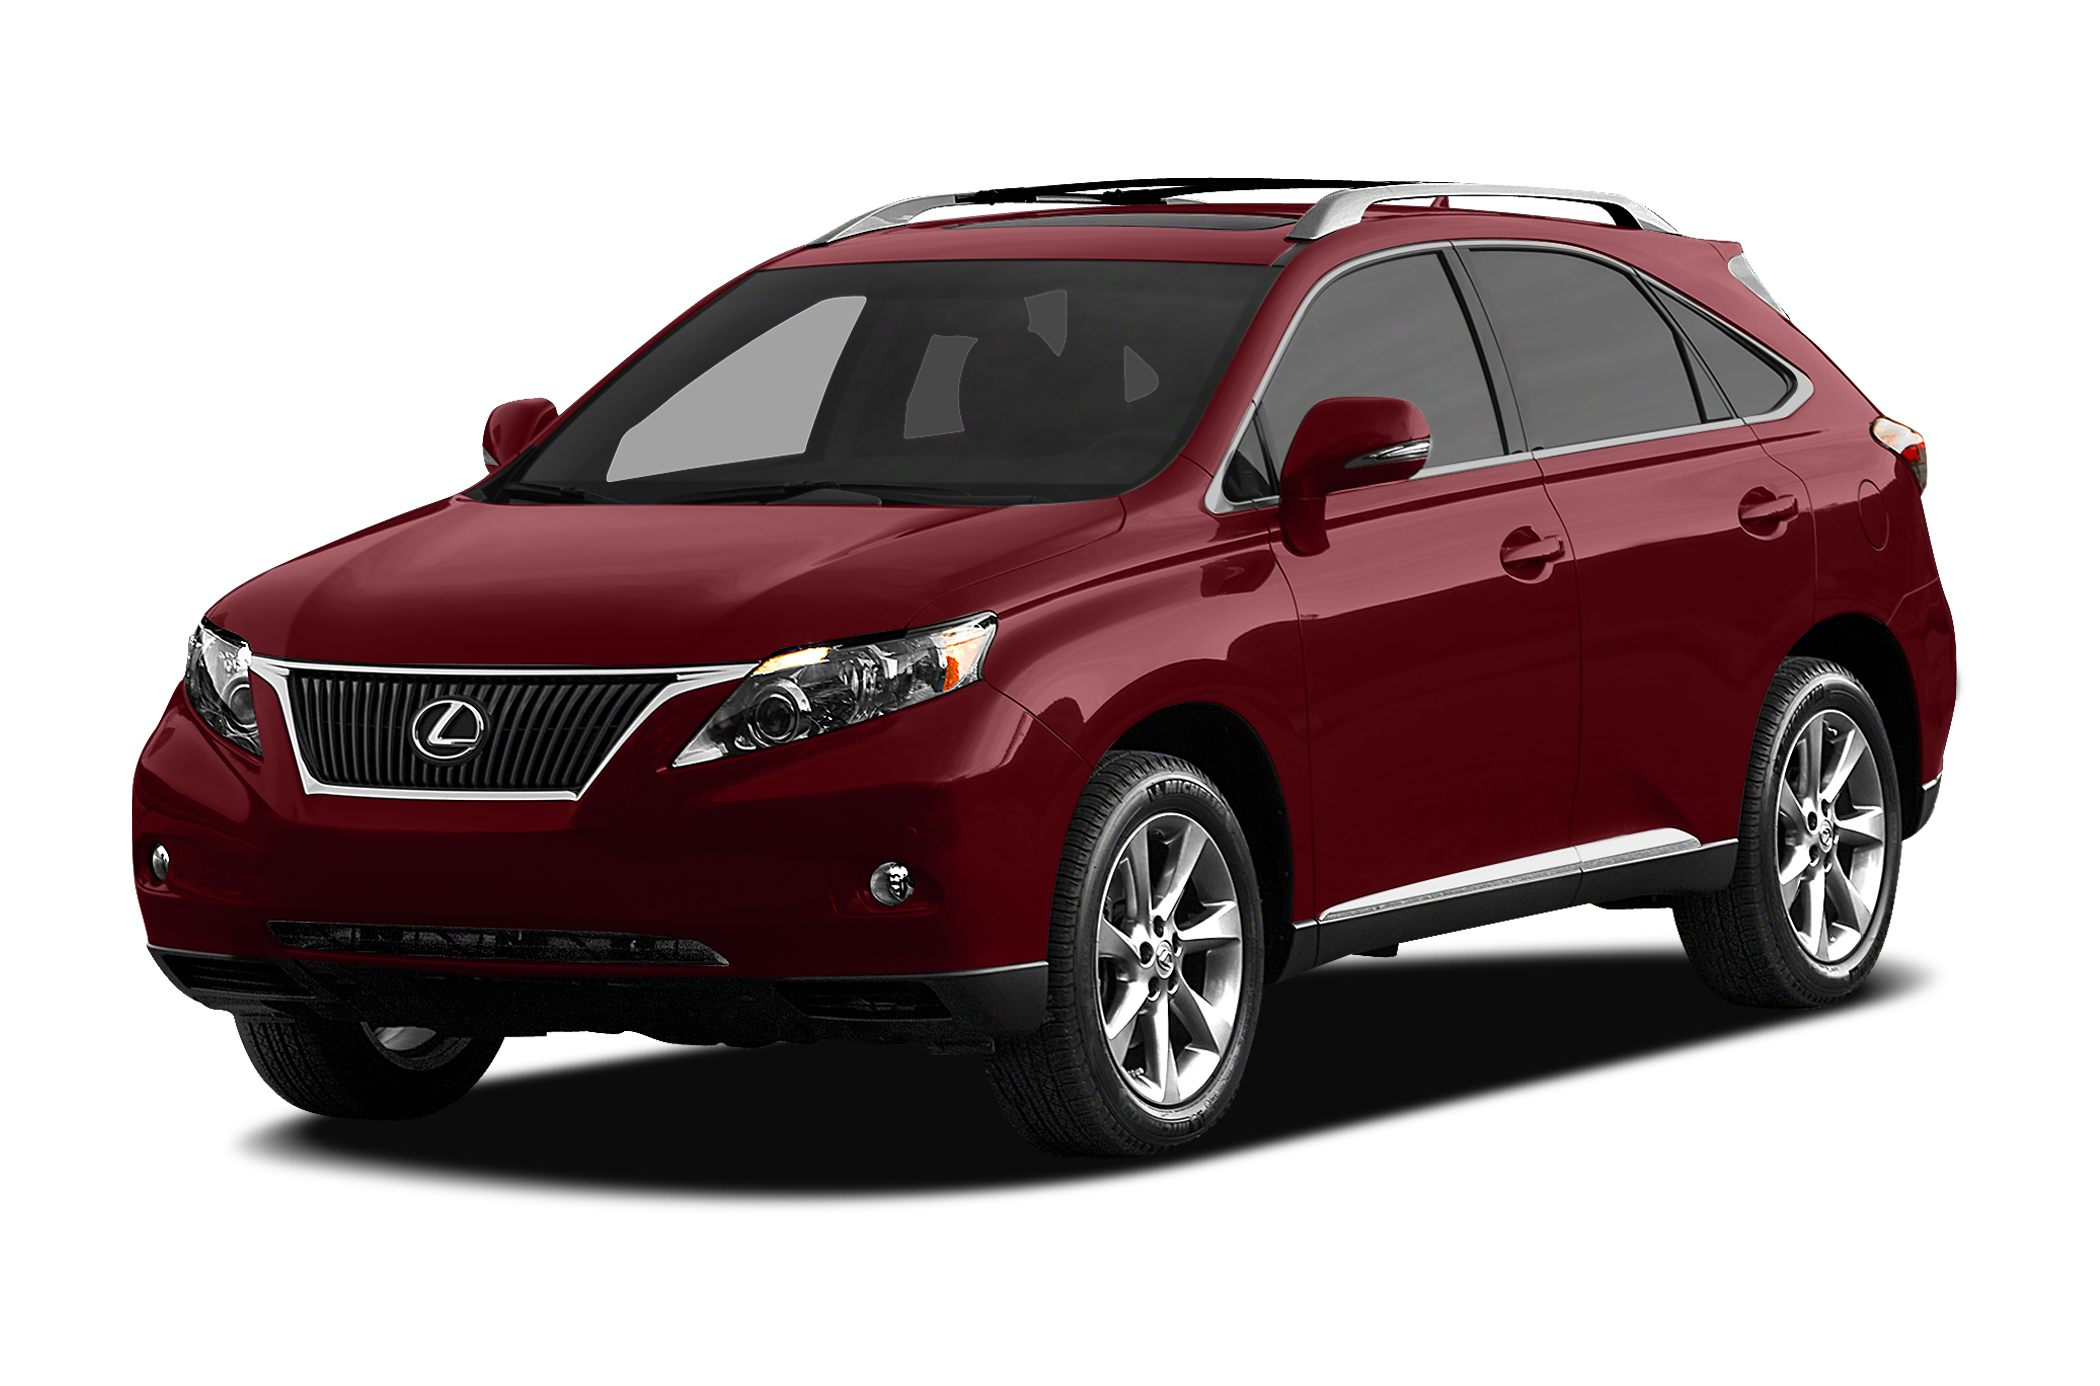 2012 Lexus RX 350 Base SUV for sale in Santa Rosa for $35,975 with 41,383 miles